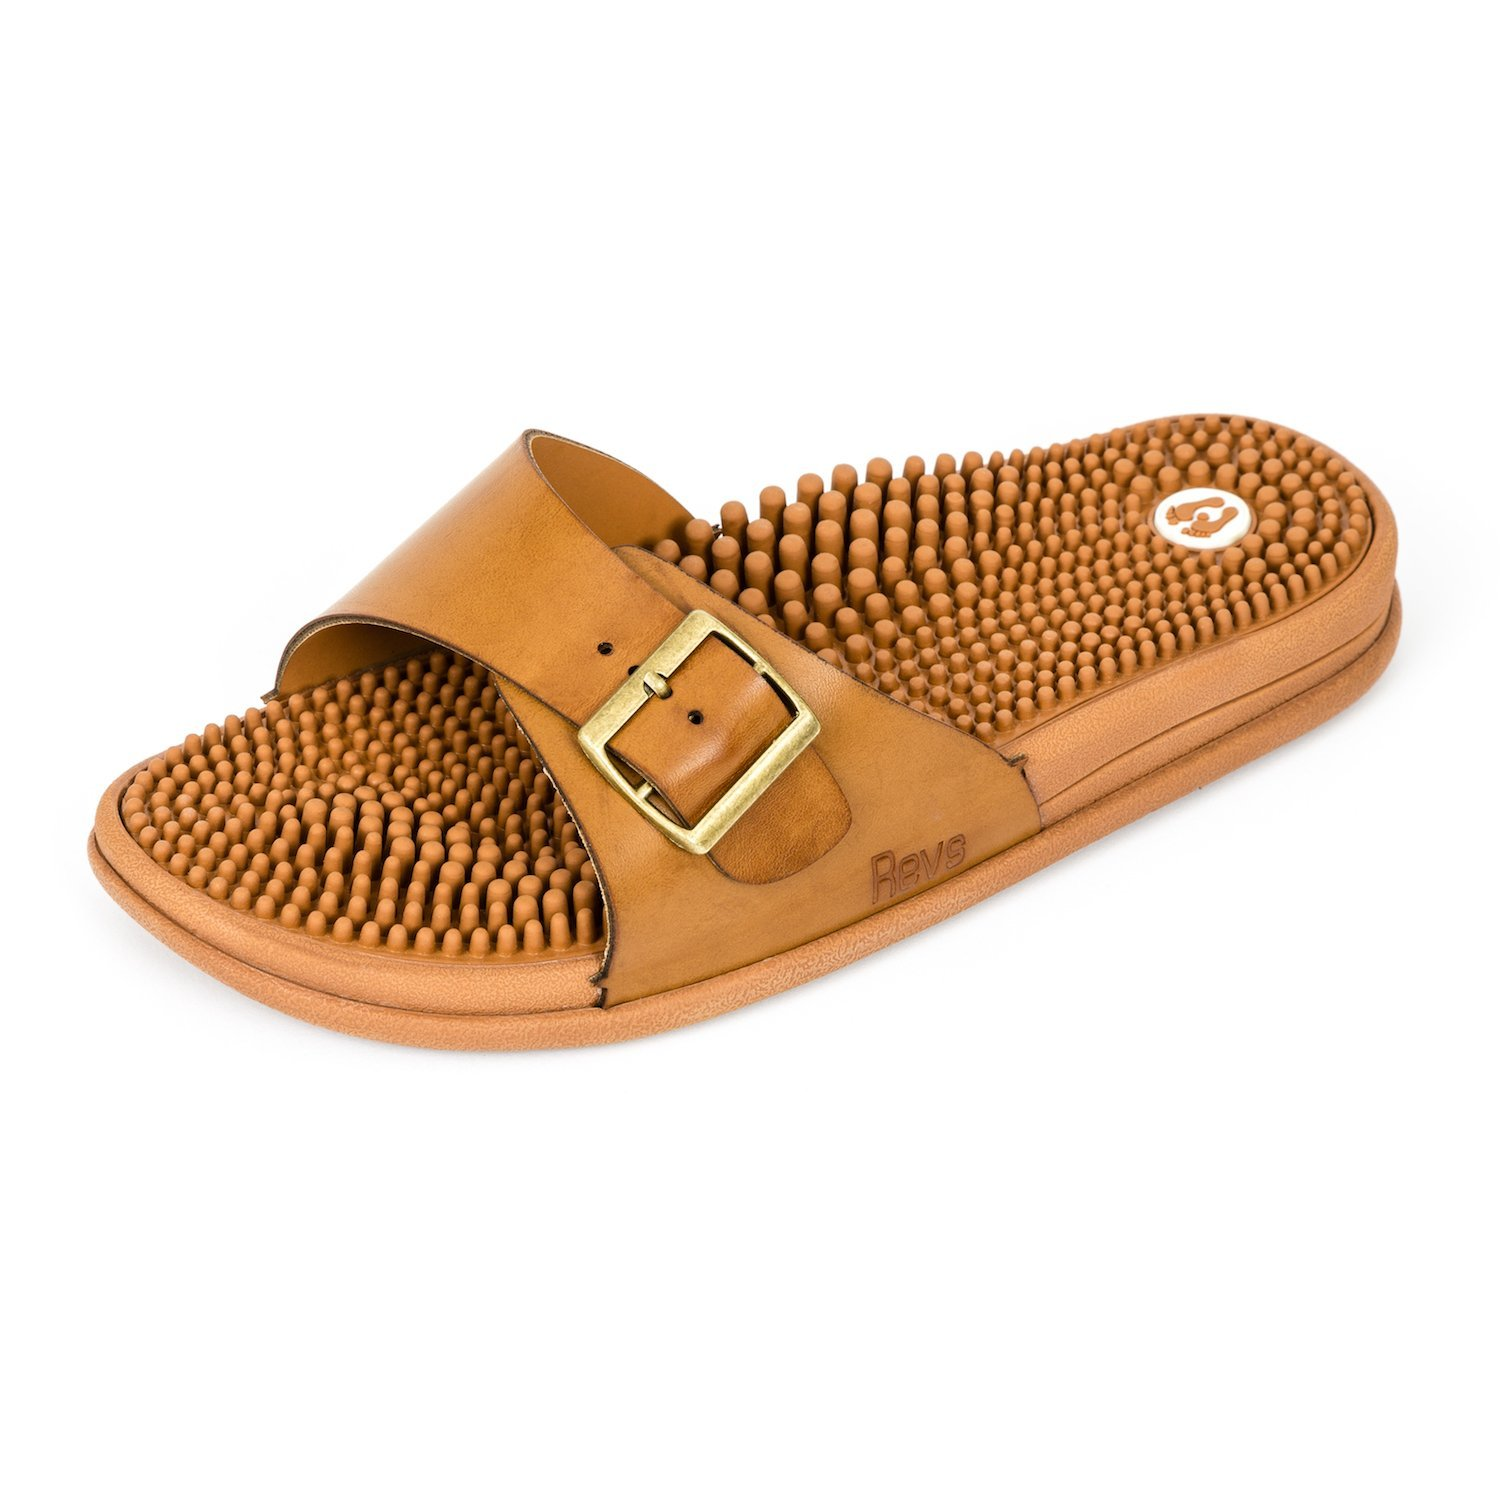 Revs Crazy Sale, The New Classic Reflexology Massage Sandals Men & Women